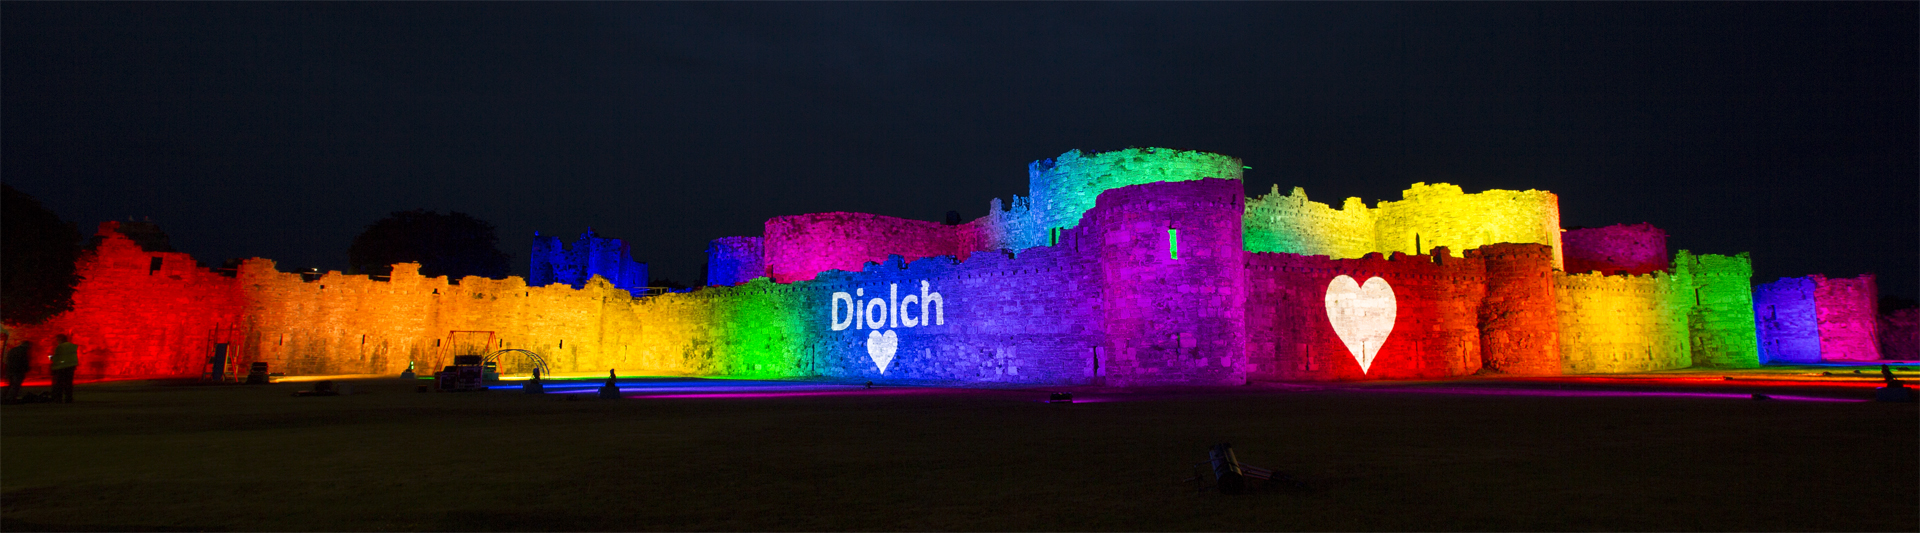 Beaumaris Castle Lit Up Rainbow Lighting Lights Outdoor Building Projection Mapping NHS